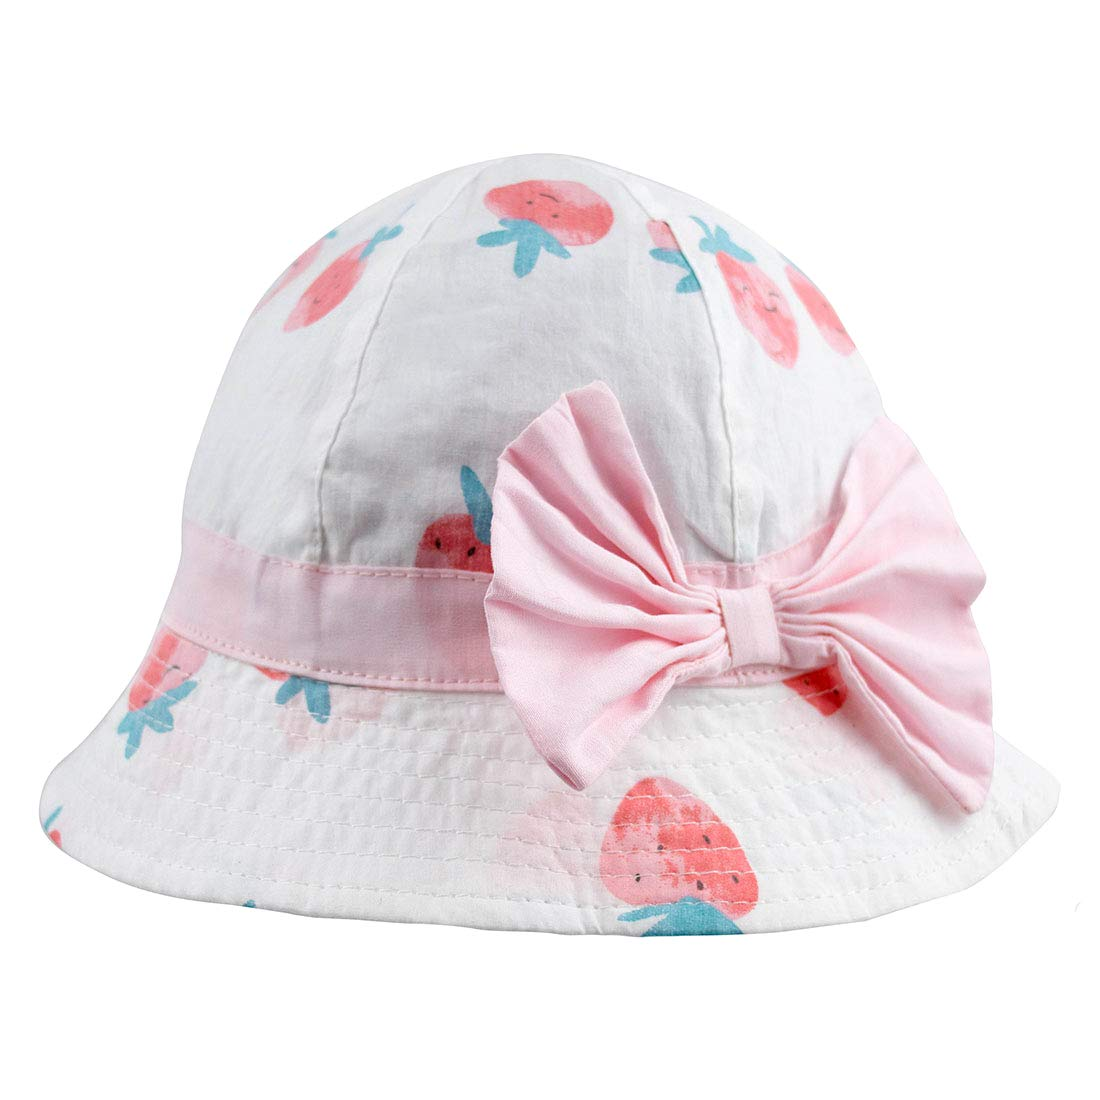 1749c164f21 Amazon.com  Baby Girl Sun Hat Bowknot - Bucket Hats for Infant Toddler  Summer Sun Protection  Clothing